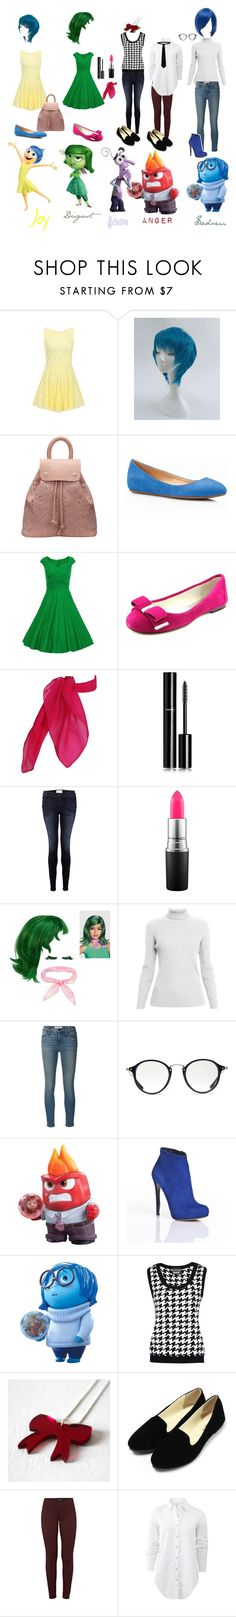 """""""Inside Out"""" by jade-alicia-sherry ❤ liked on Polyvore featuring Talbots, MICHAEL Michael Kors, Chanel, Frame Denim, MAC Cosmetics, Rumour London, Ray-Ban, Nicholas Kirkwood, Disney and Boutique Moschino"""